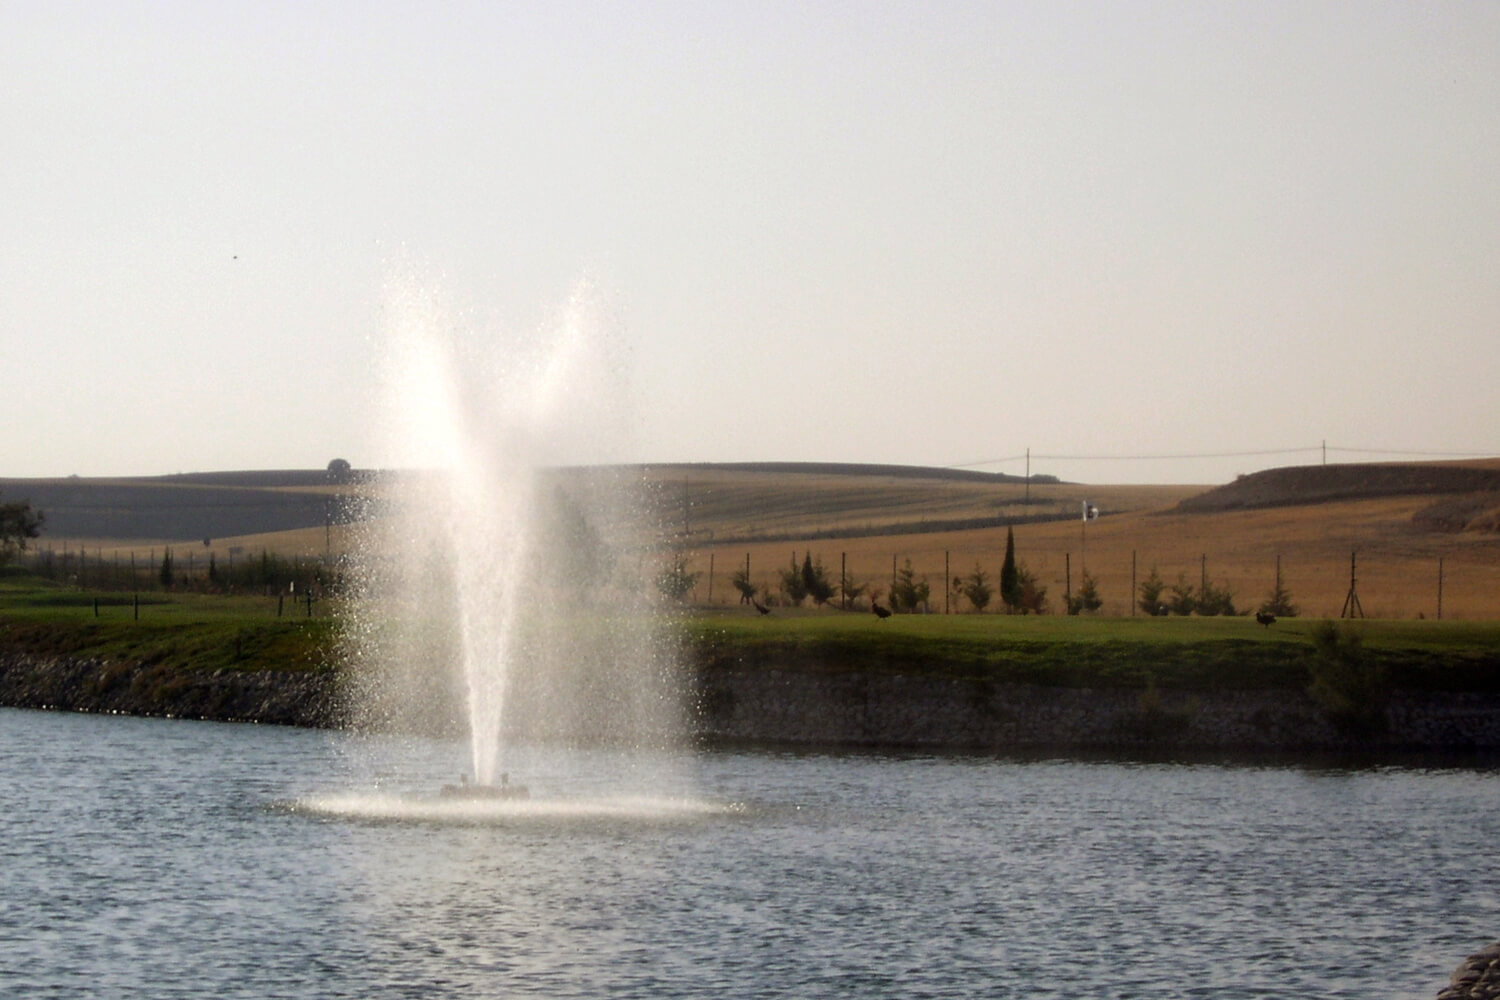 One of Otterbine's Rocket Aerating Geyser Fountains